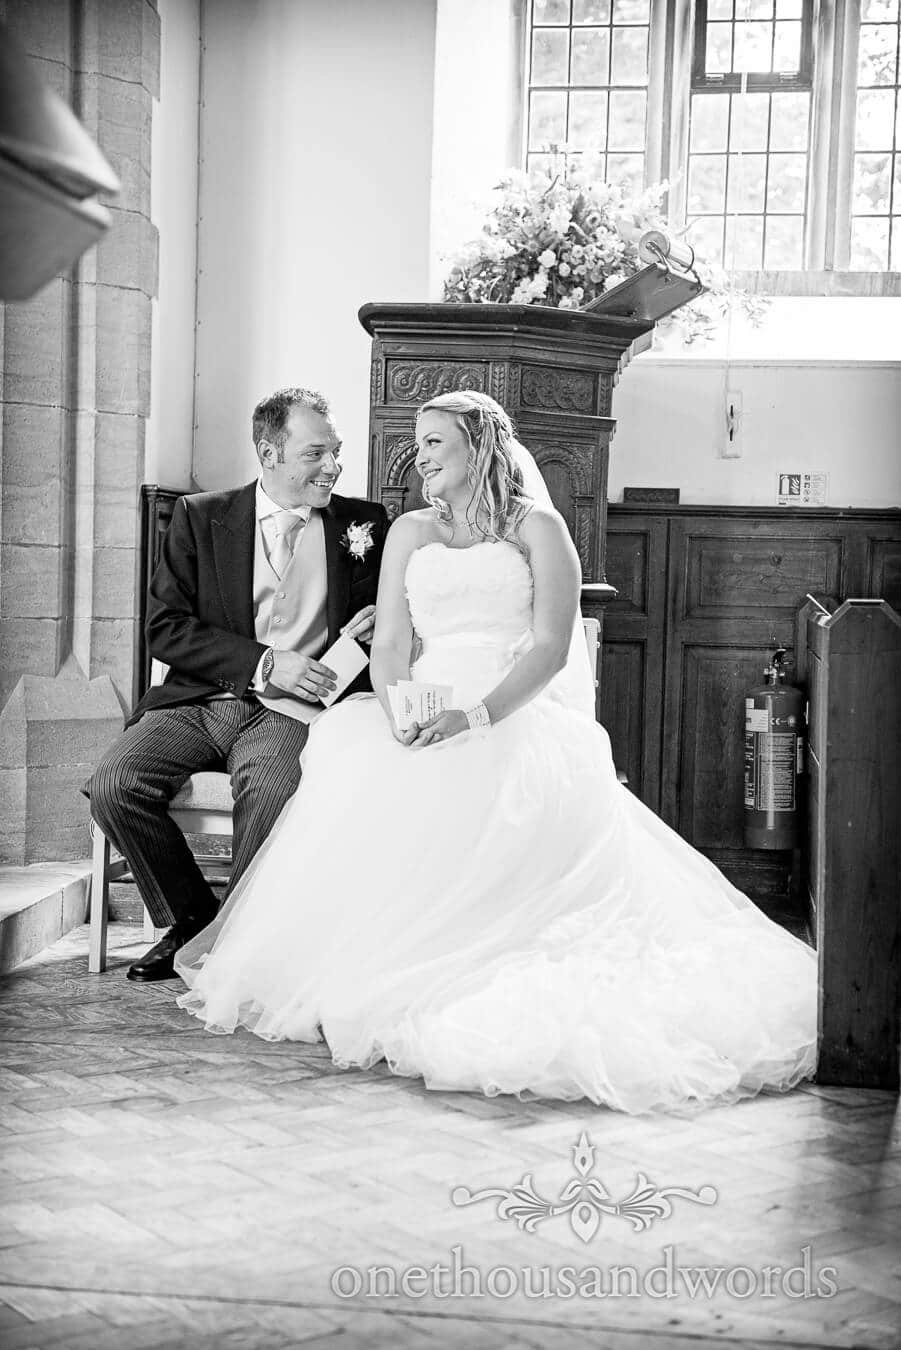 Black and white photograph of bride and groom in church wedding